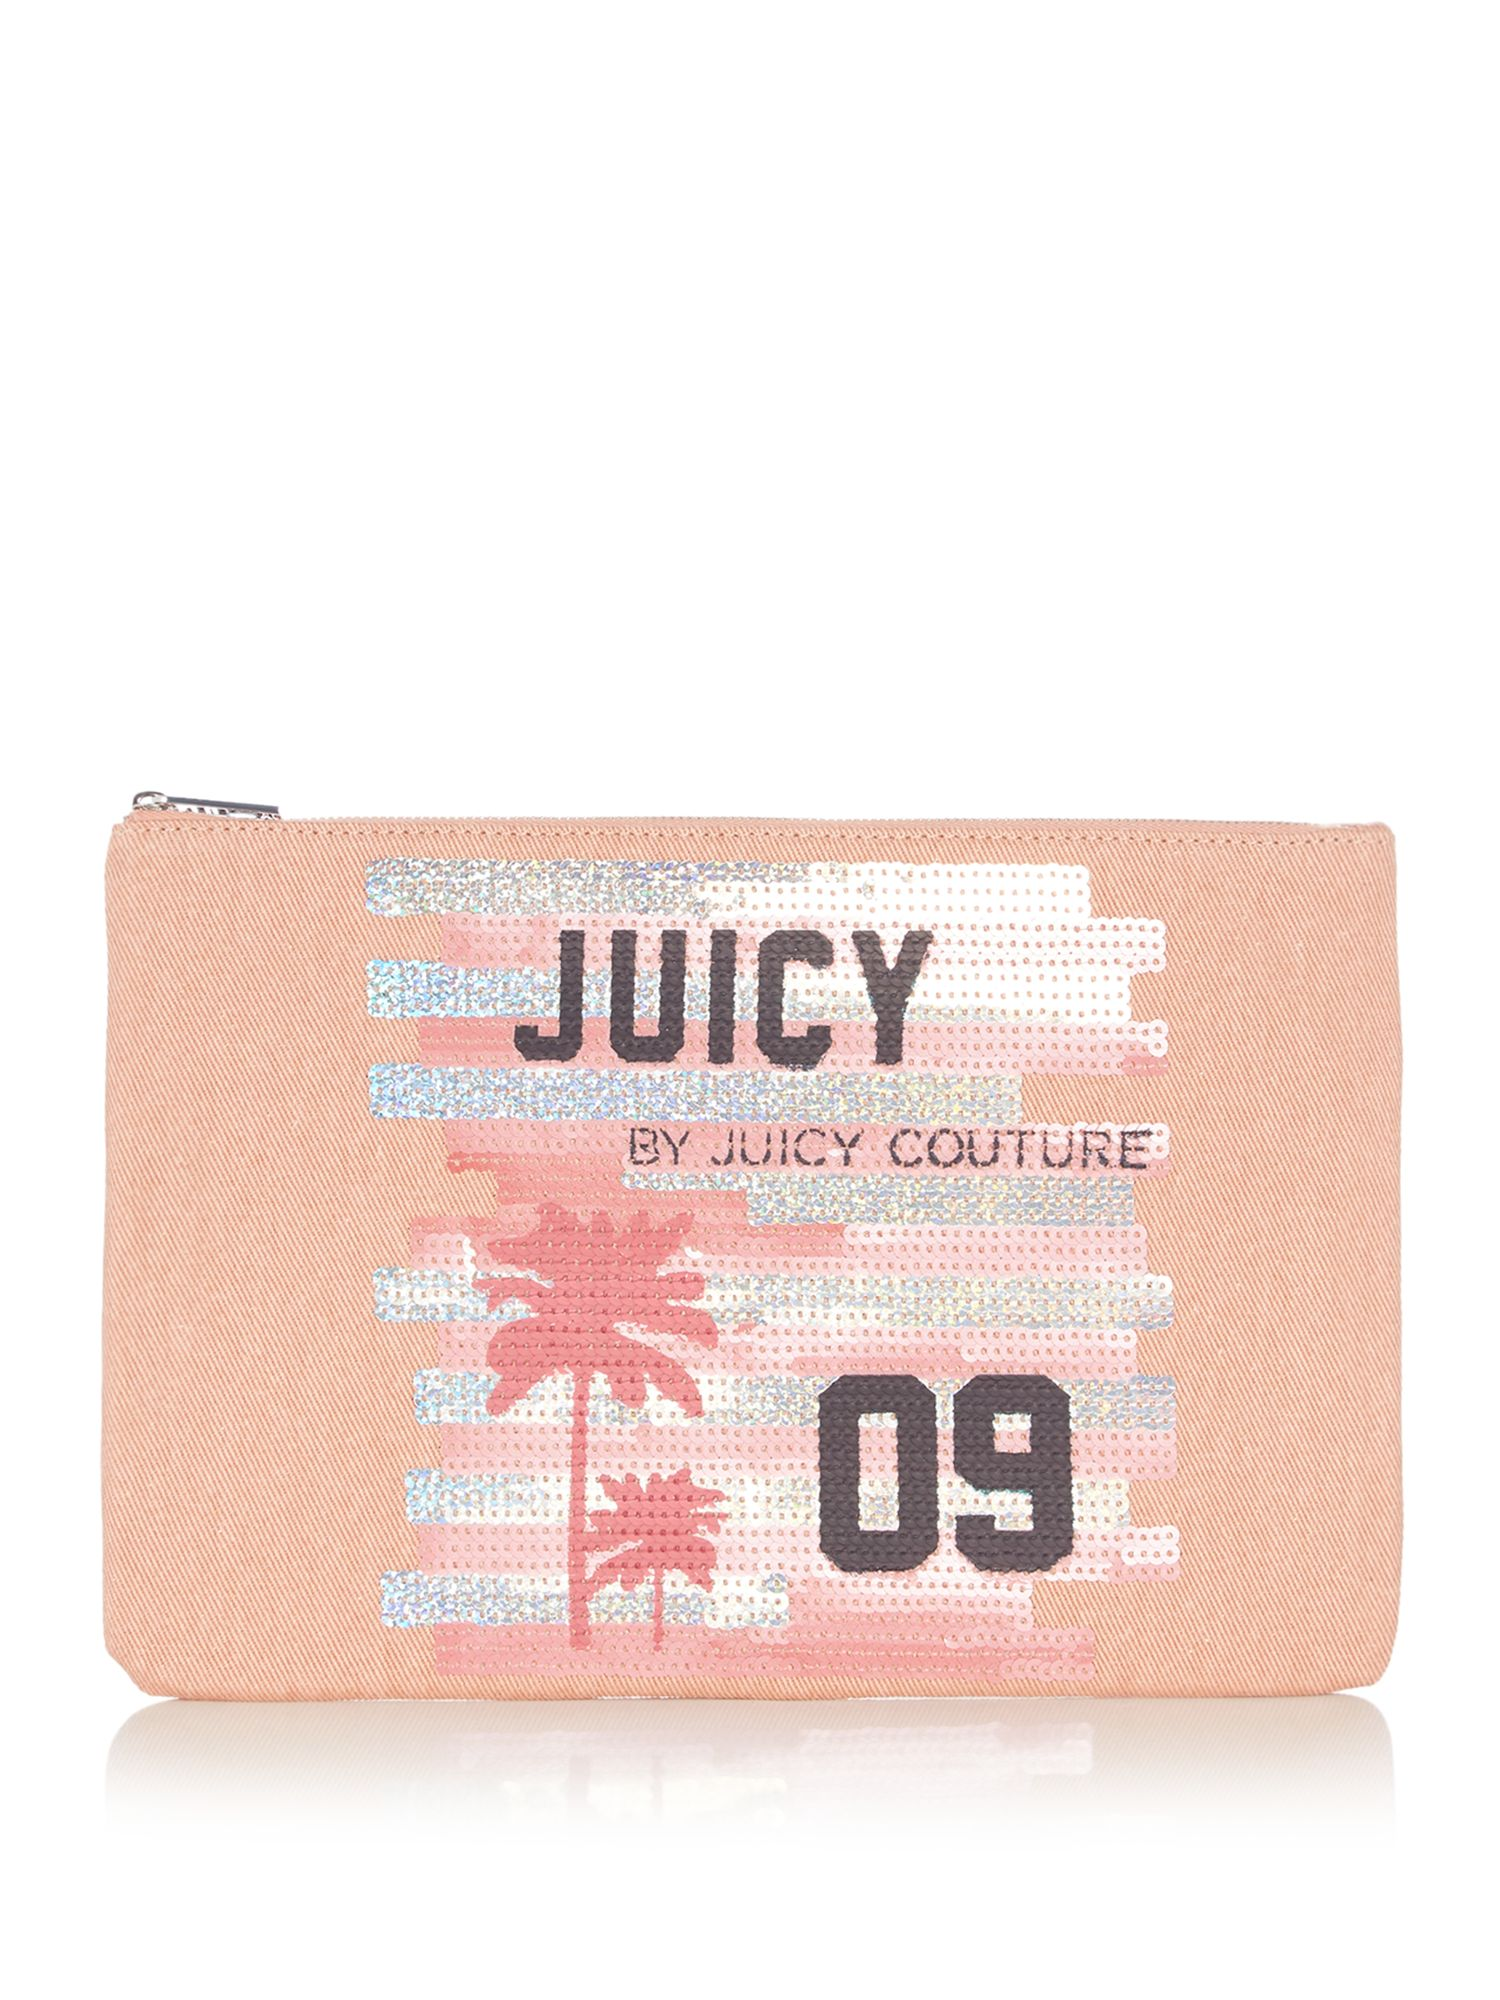 Juicy by Juicy Couture Zoey large pouch, Pink